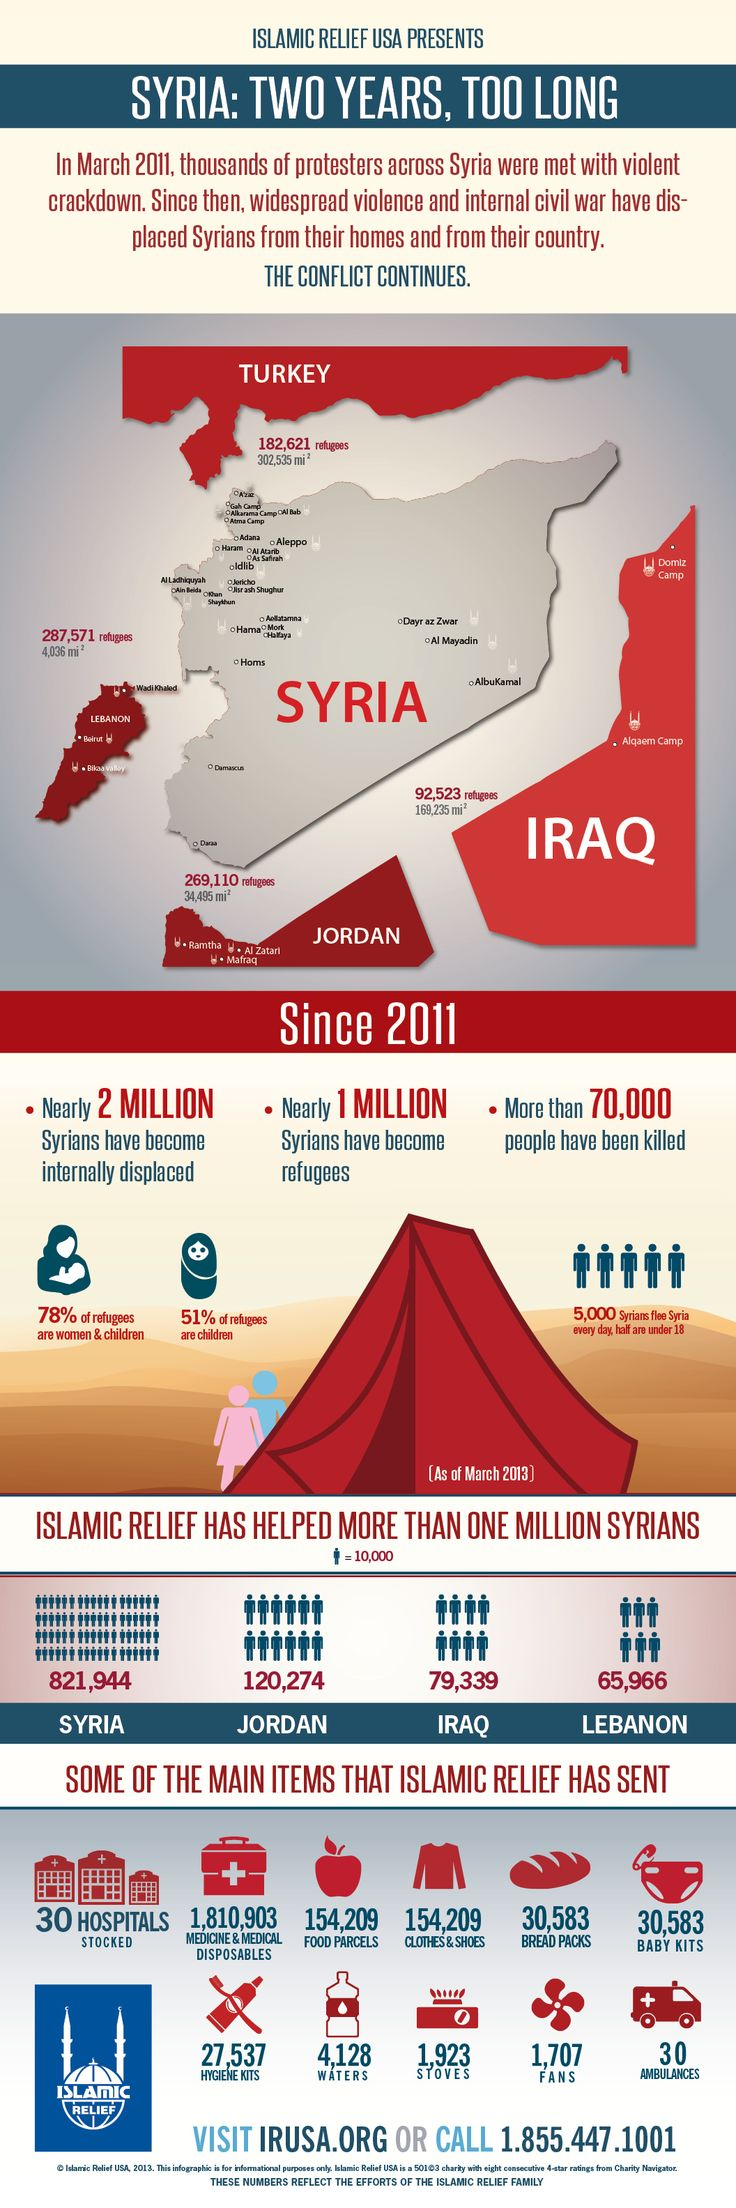 How have Islamic Relief donors helped #Syrians in need? Here's an infographic that breaks it down. Download it, share it, spread it -- the more people who know, the more people can help going forward. MILLIONS OF SYRIANS ARE STILL IN NEED OF HELP, and raising awareness is one way to inspire people to respond to the call for #humanitarian aid.